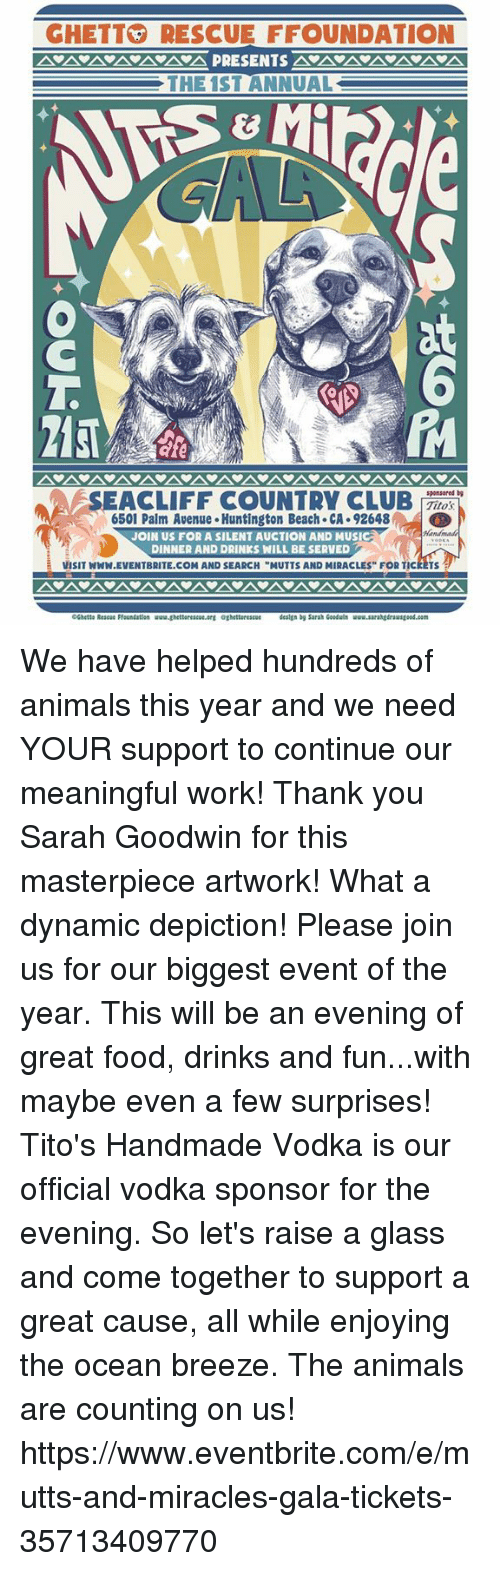 "Animals, Club, and Food: GHETTRESCUE FFOUNDATION  THE 1ST ANNUAL  at  6  SEACLIFF COUNTRY CLUB,  sponsored  Titos  ;  6501 Palm Avenue Huntington Beach CA. 92648  JOIN US FOR A SILENT AUCTION AND MUSIC  DINNER AND DRINKS WILL BE SERVED  VISIT WWW.EVENTBRITE.COM AND SEARCH ""MUTTS AND MIRACLES FOR TICKETS  CGhetta Rescu Pfoundation www.ghettorescue.erg oghettarescue degn by Sarah Gooduls  ood.com We have helped hundreds of animals this year and we need YOUR support to continue our meaningful work!   Thank you Sarah Goodwin for this masterpiece artwork!  What a dynamic depiction!   Please join us for our biggest event of the year. This will be an evening of great food, drinks and fun...with maybe even a few surprises! Tito's Handmade Vodka is our official vodka sponsor for the evening. So let's raise a glass and come together to support a great cause, all while enjoying the ocean breeze. The animals are counting on us! https://www.eventbrite.com/e/mutts-and-miracles-gala-tickets-35713409770"